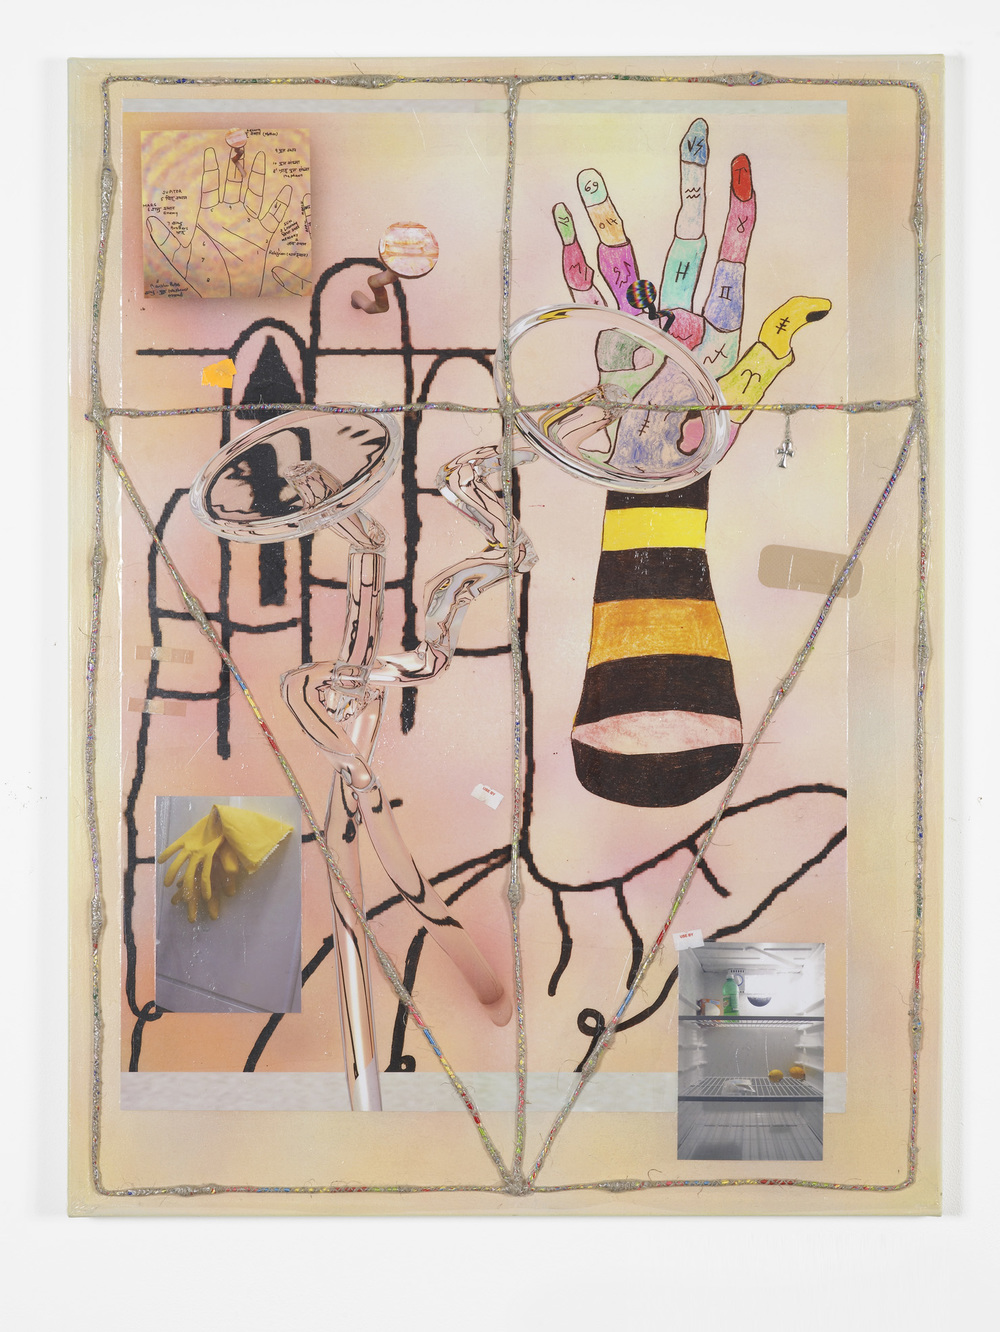 Nicholas Cheveldave Defroster III 2016 Photolaminate, acrylic, paper, friendship bracelets, hemp and metal on canvas 80 x 60 cm / 31.4 x 23.6 in  HS12-NC5460P